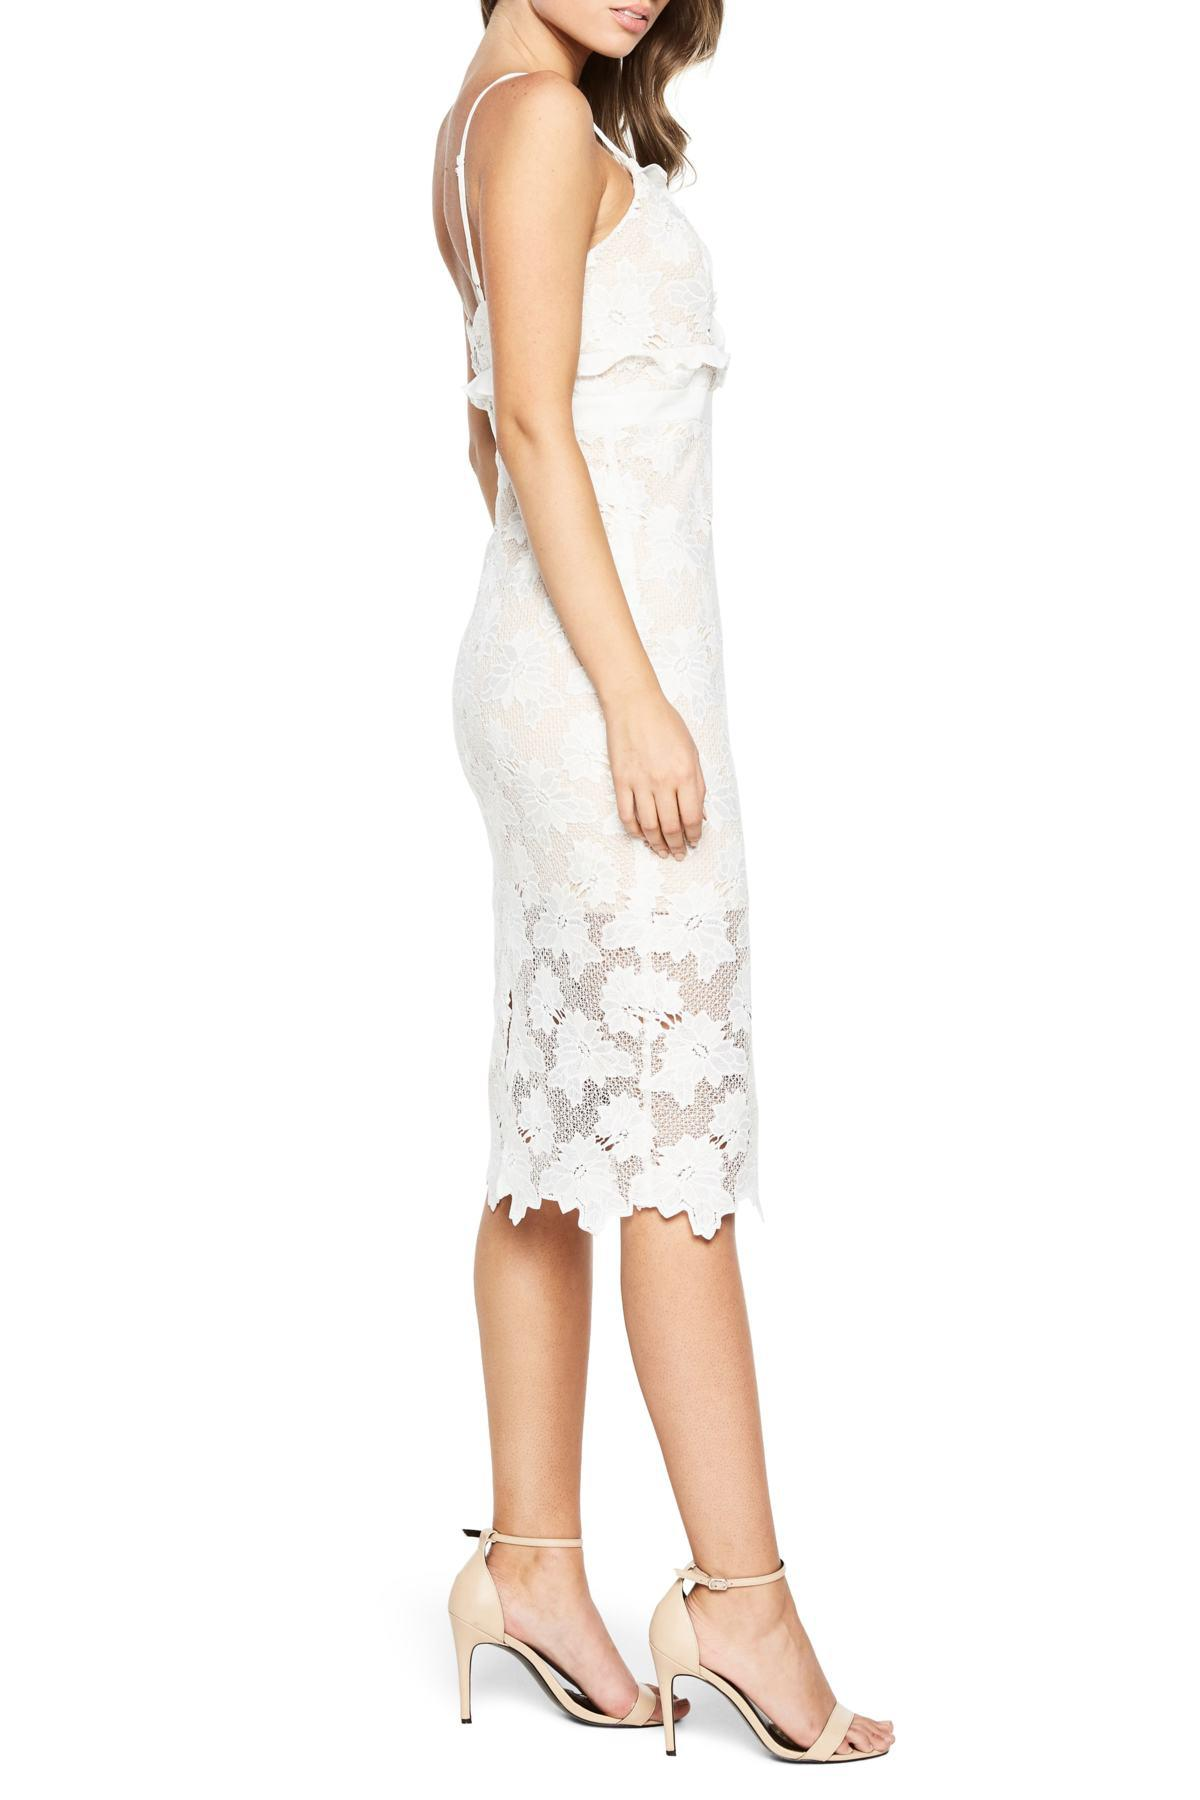 4662790c Gallery. Previously sold at: Nordstrom Rack · Women's Cotton Dresses ...